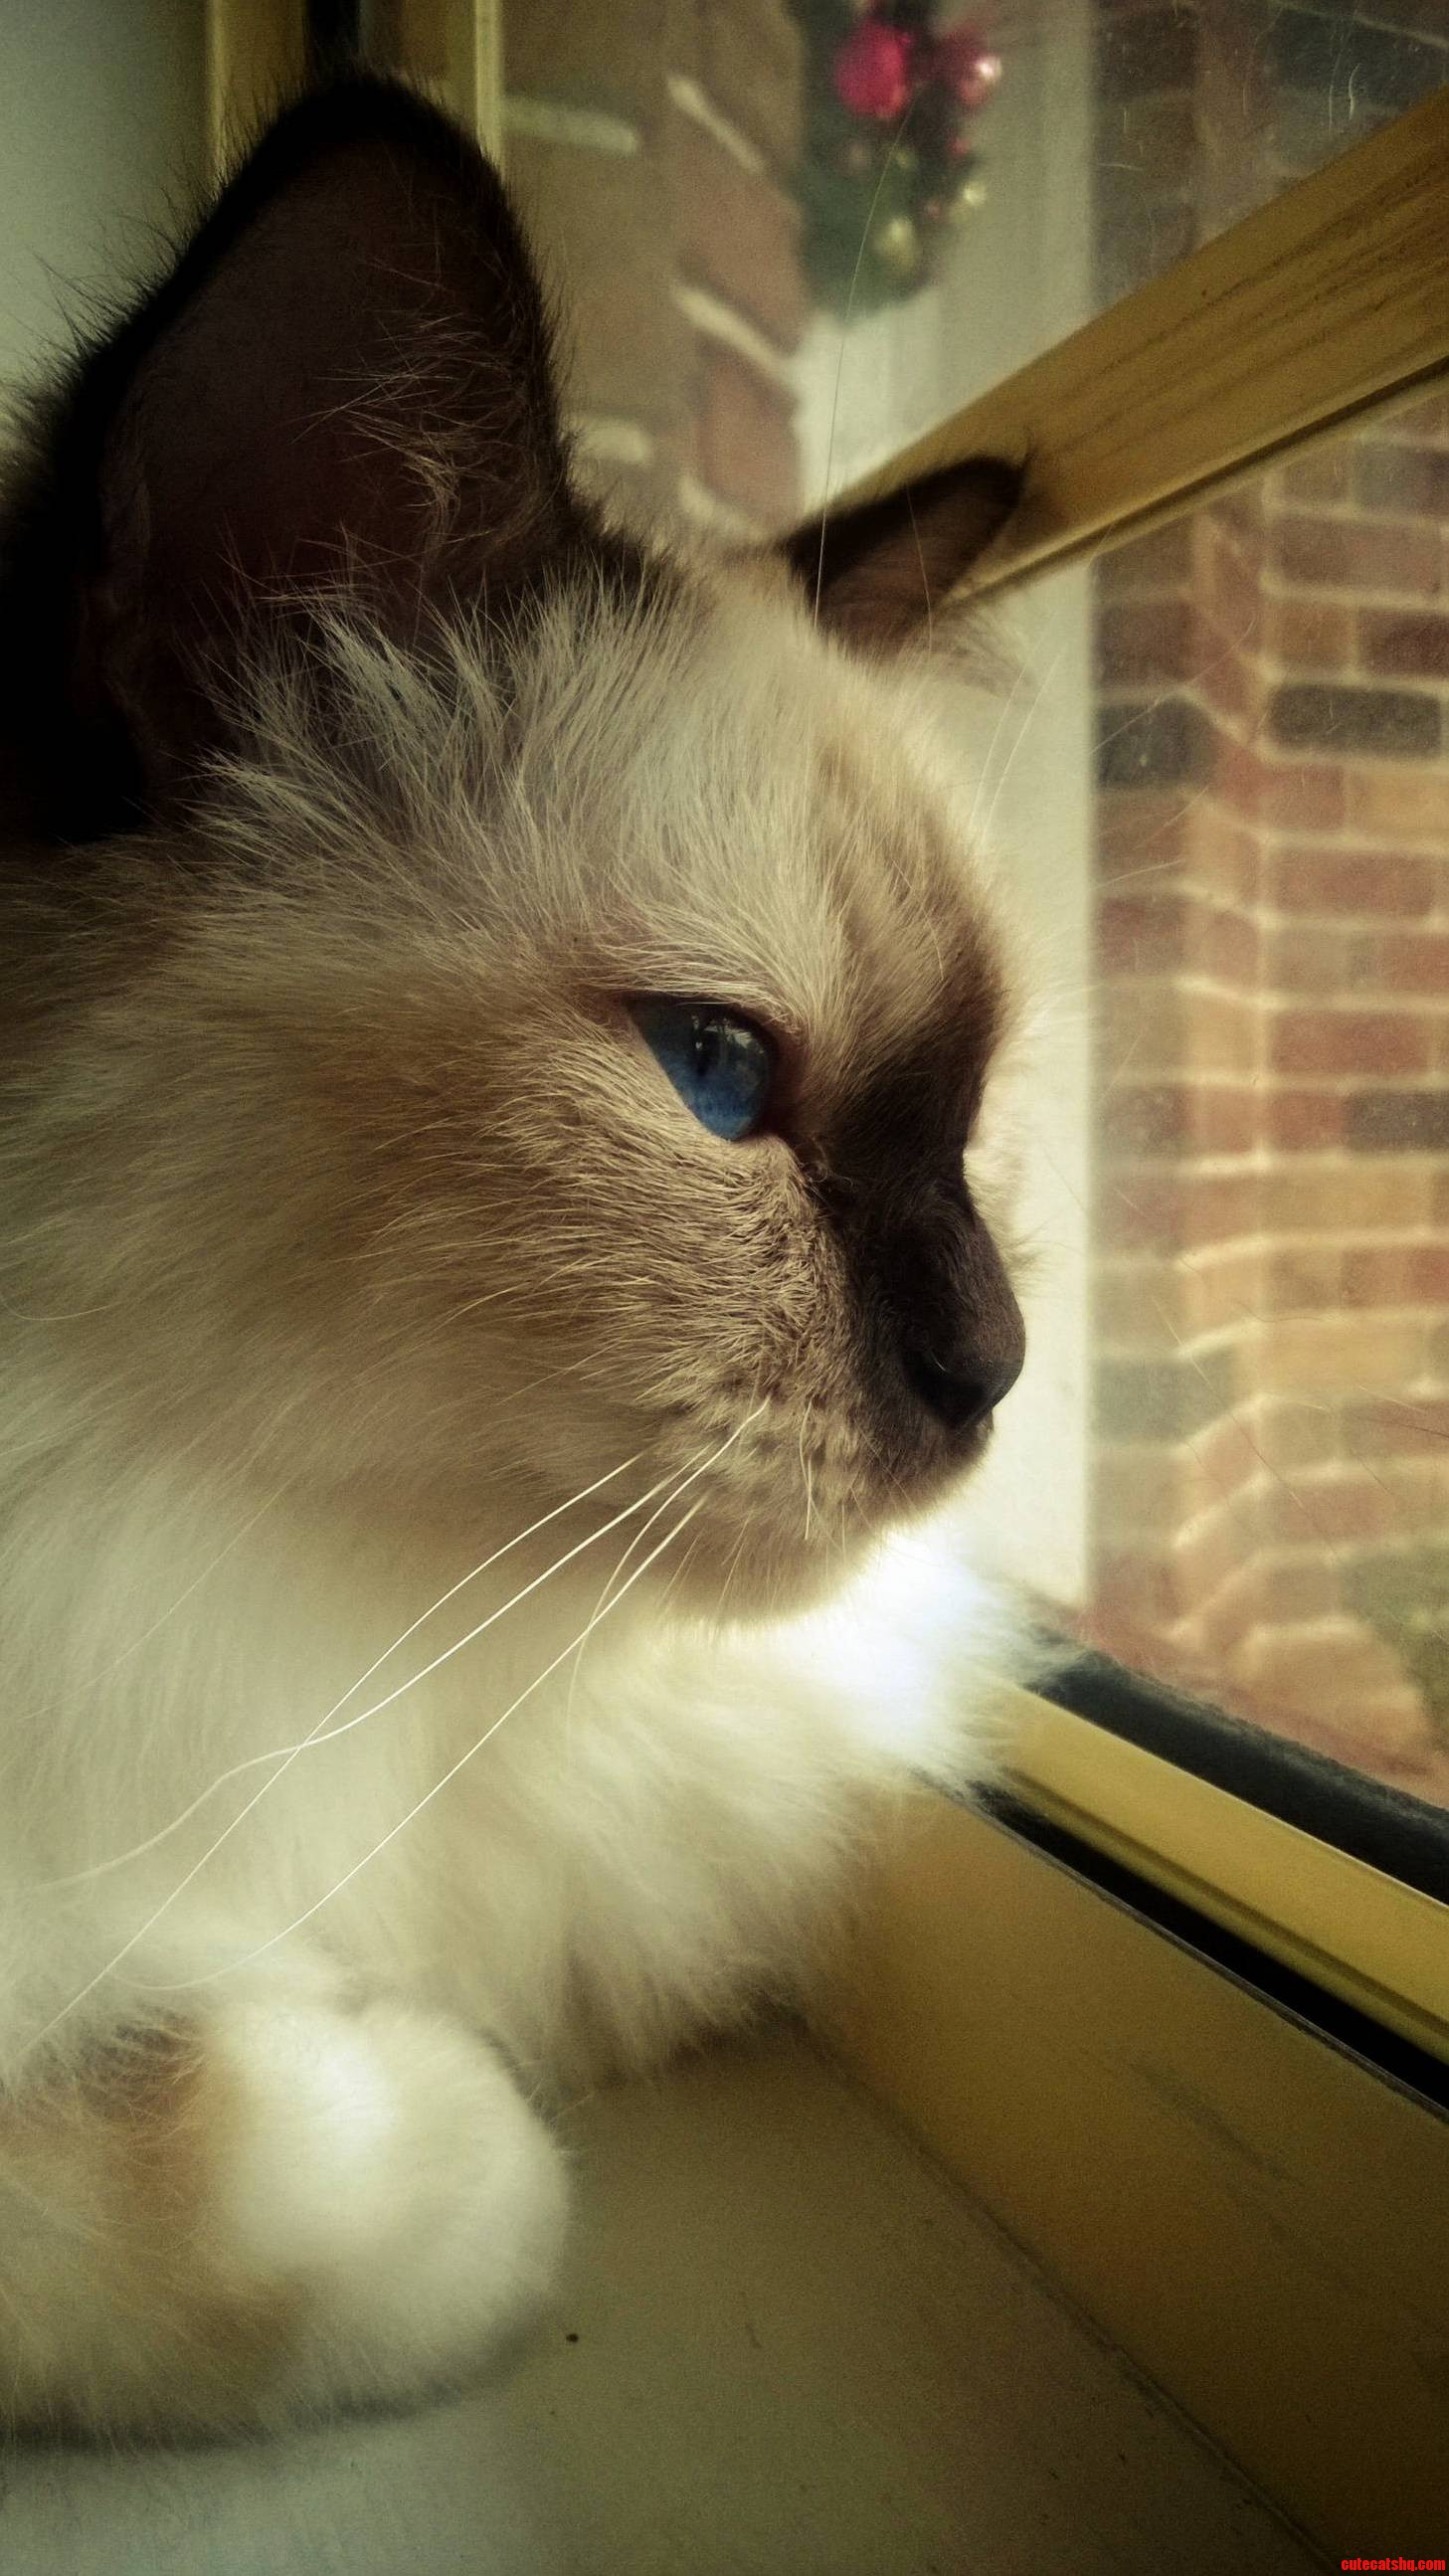 Milo watching the world go by on his birthday